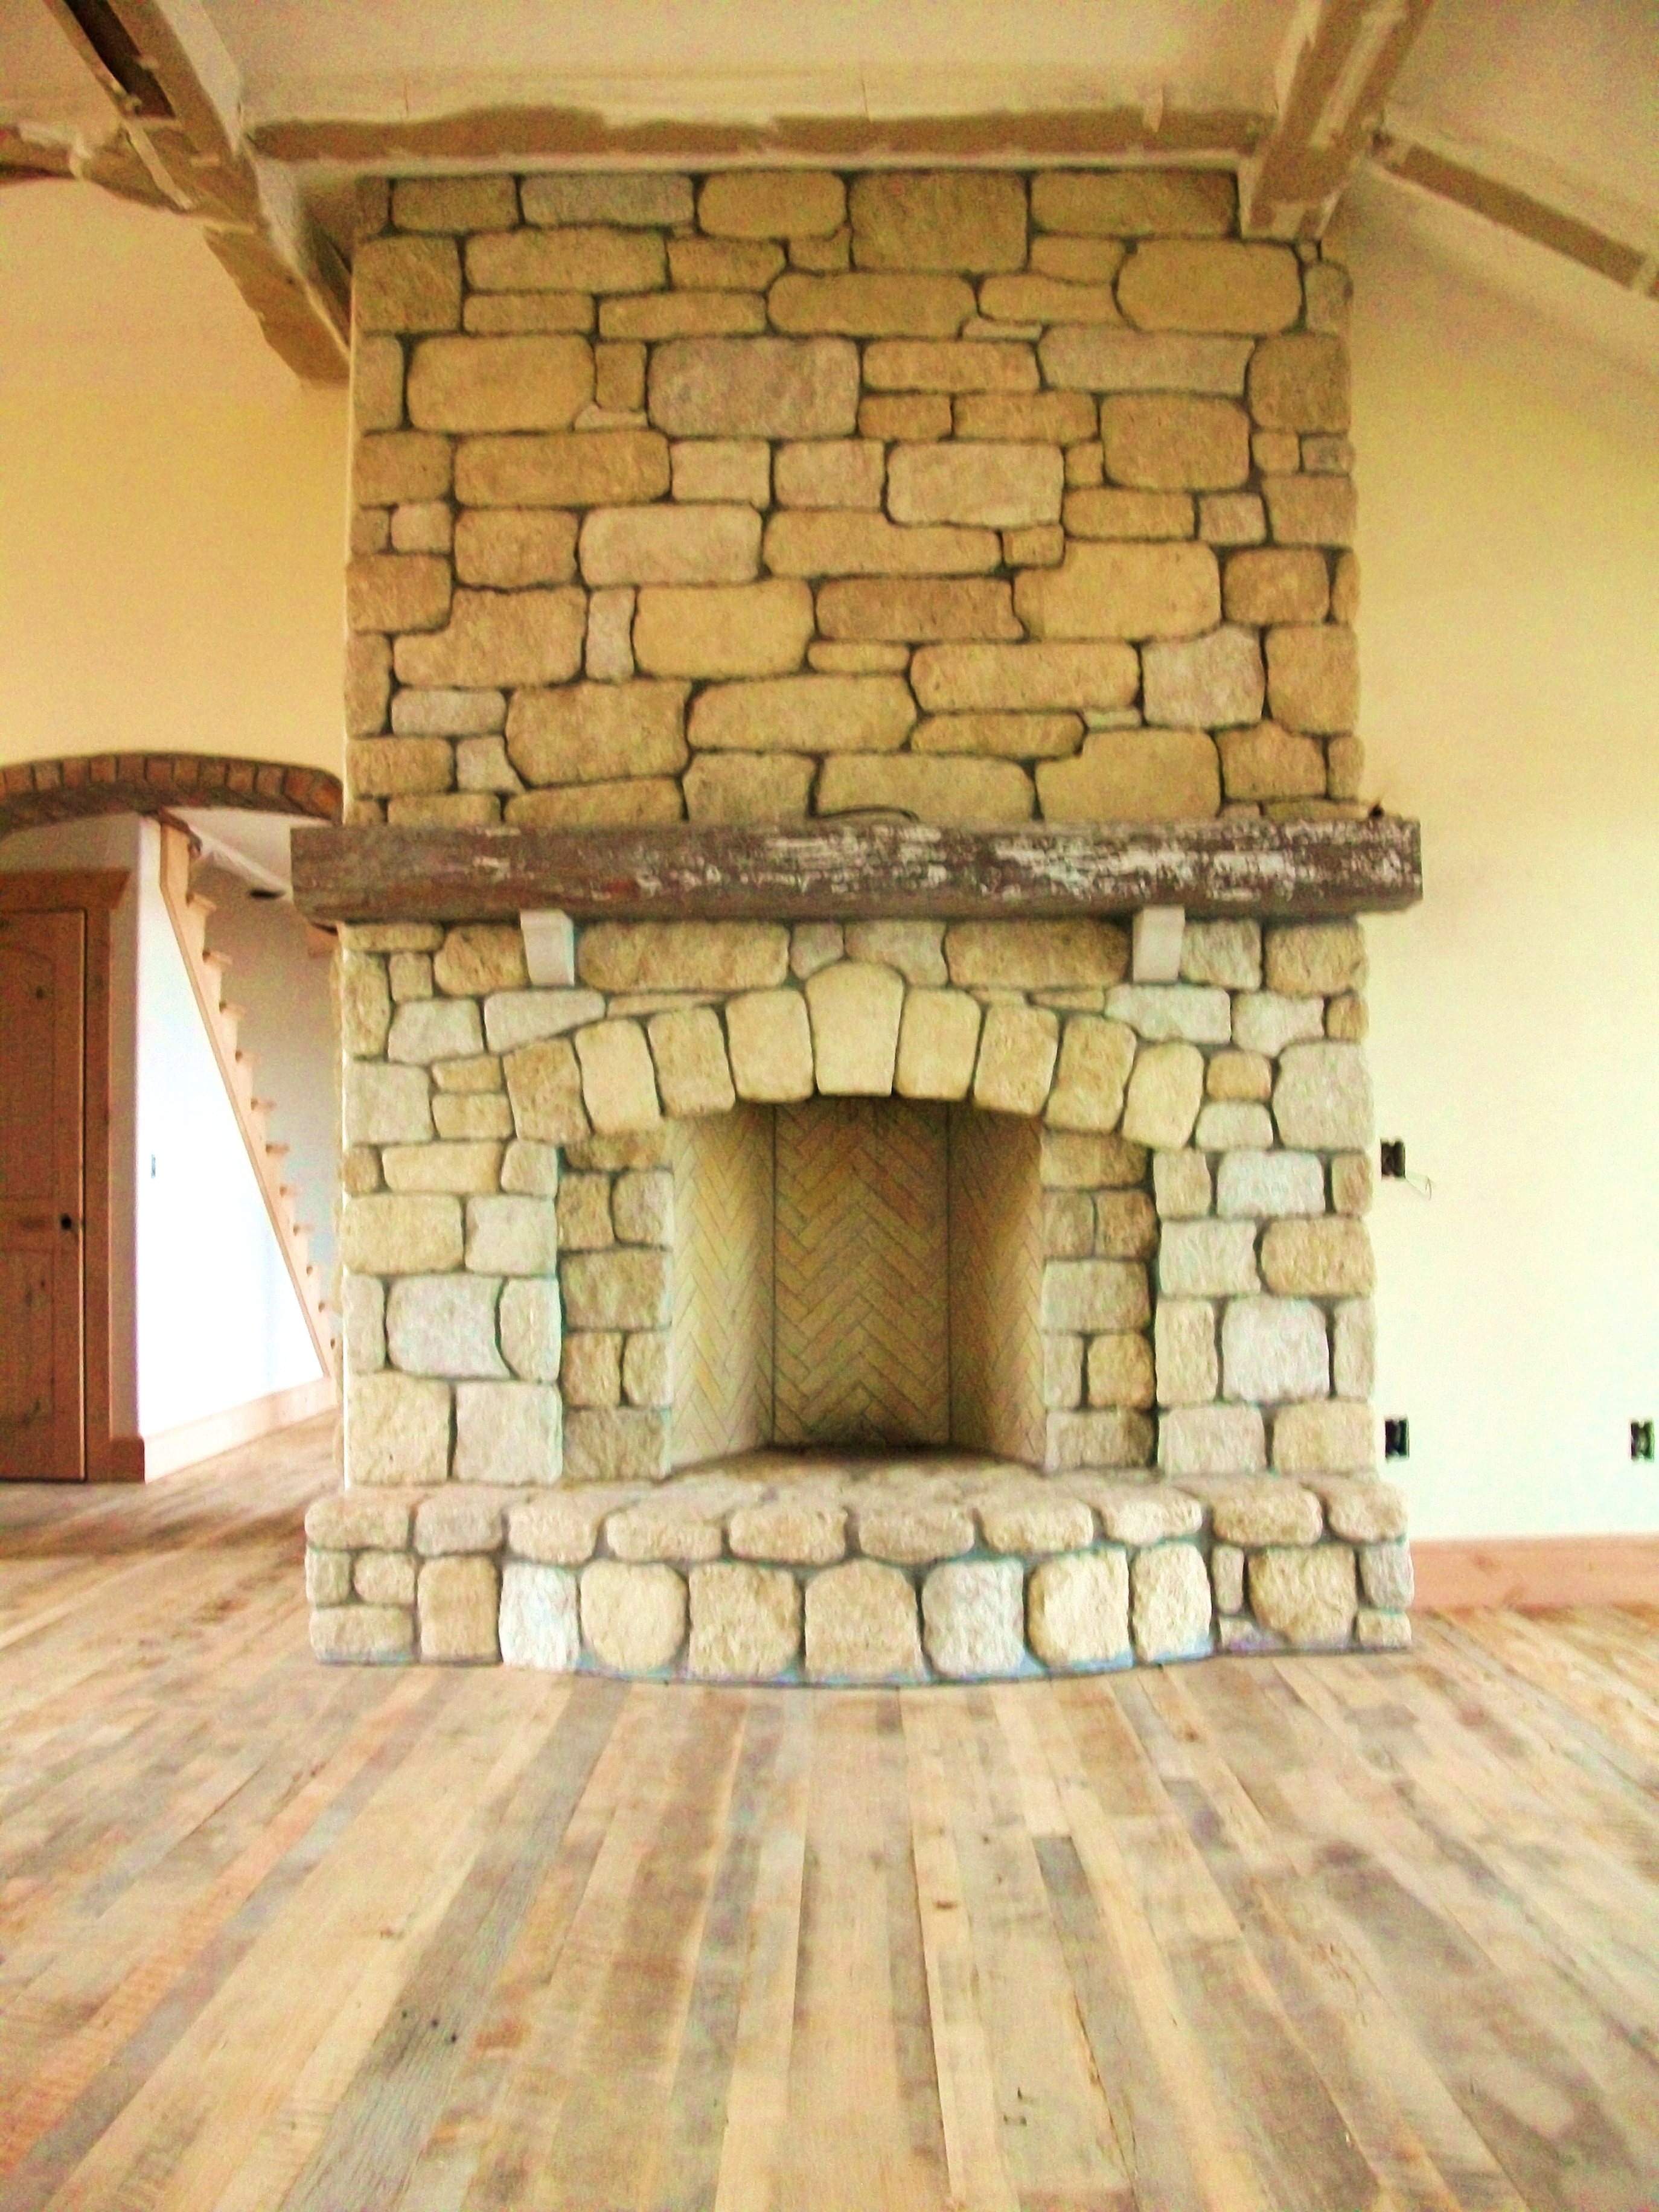 Rumford fireplace with natural stone mantel kit matched with wooden floor and white wall ideas